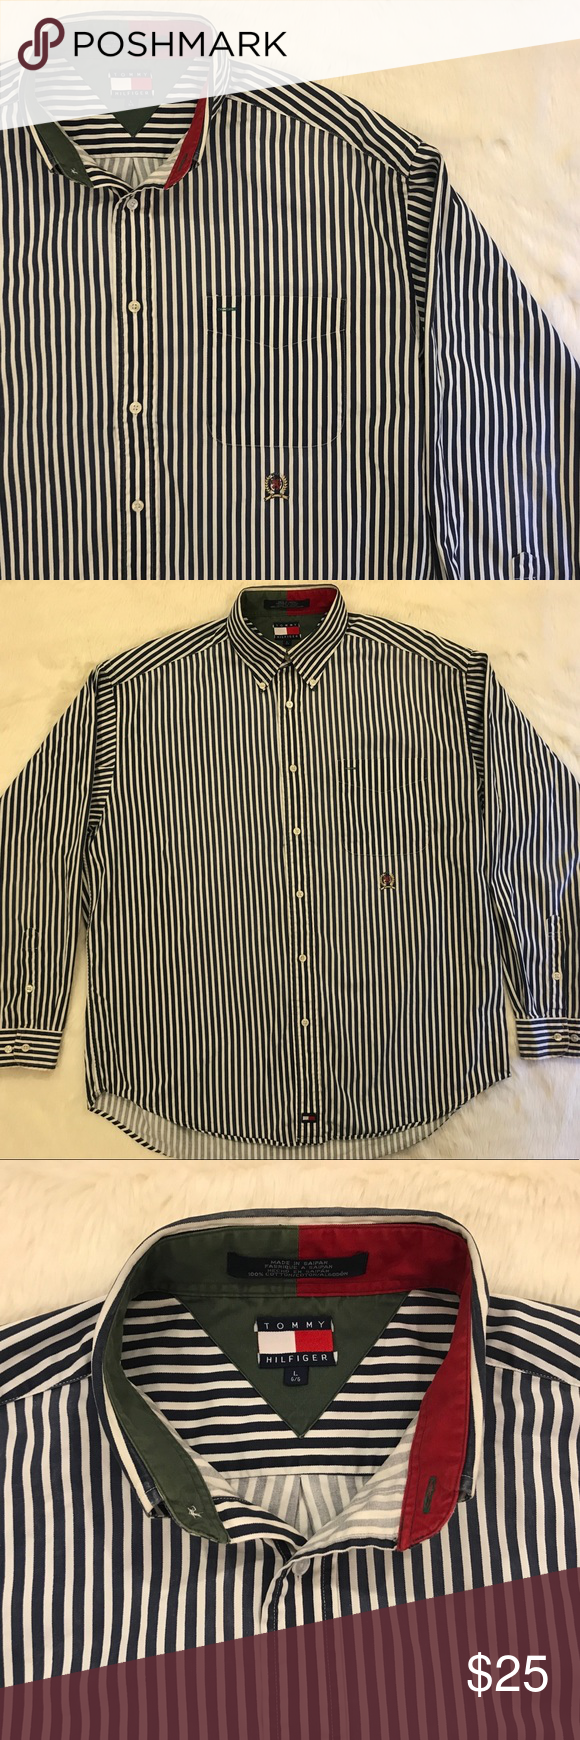 ea8ff2611 Vintage TOMMY HILFIGER Striped Button Down Shirt Vintage Tommy Hilfiger  button down shirt. Embroidered logos